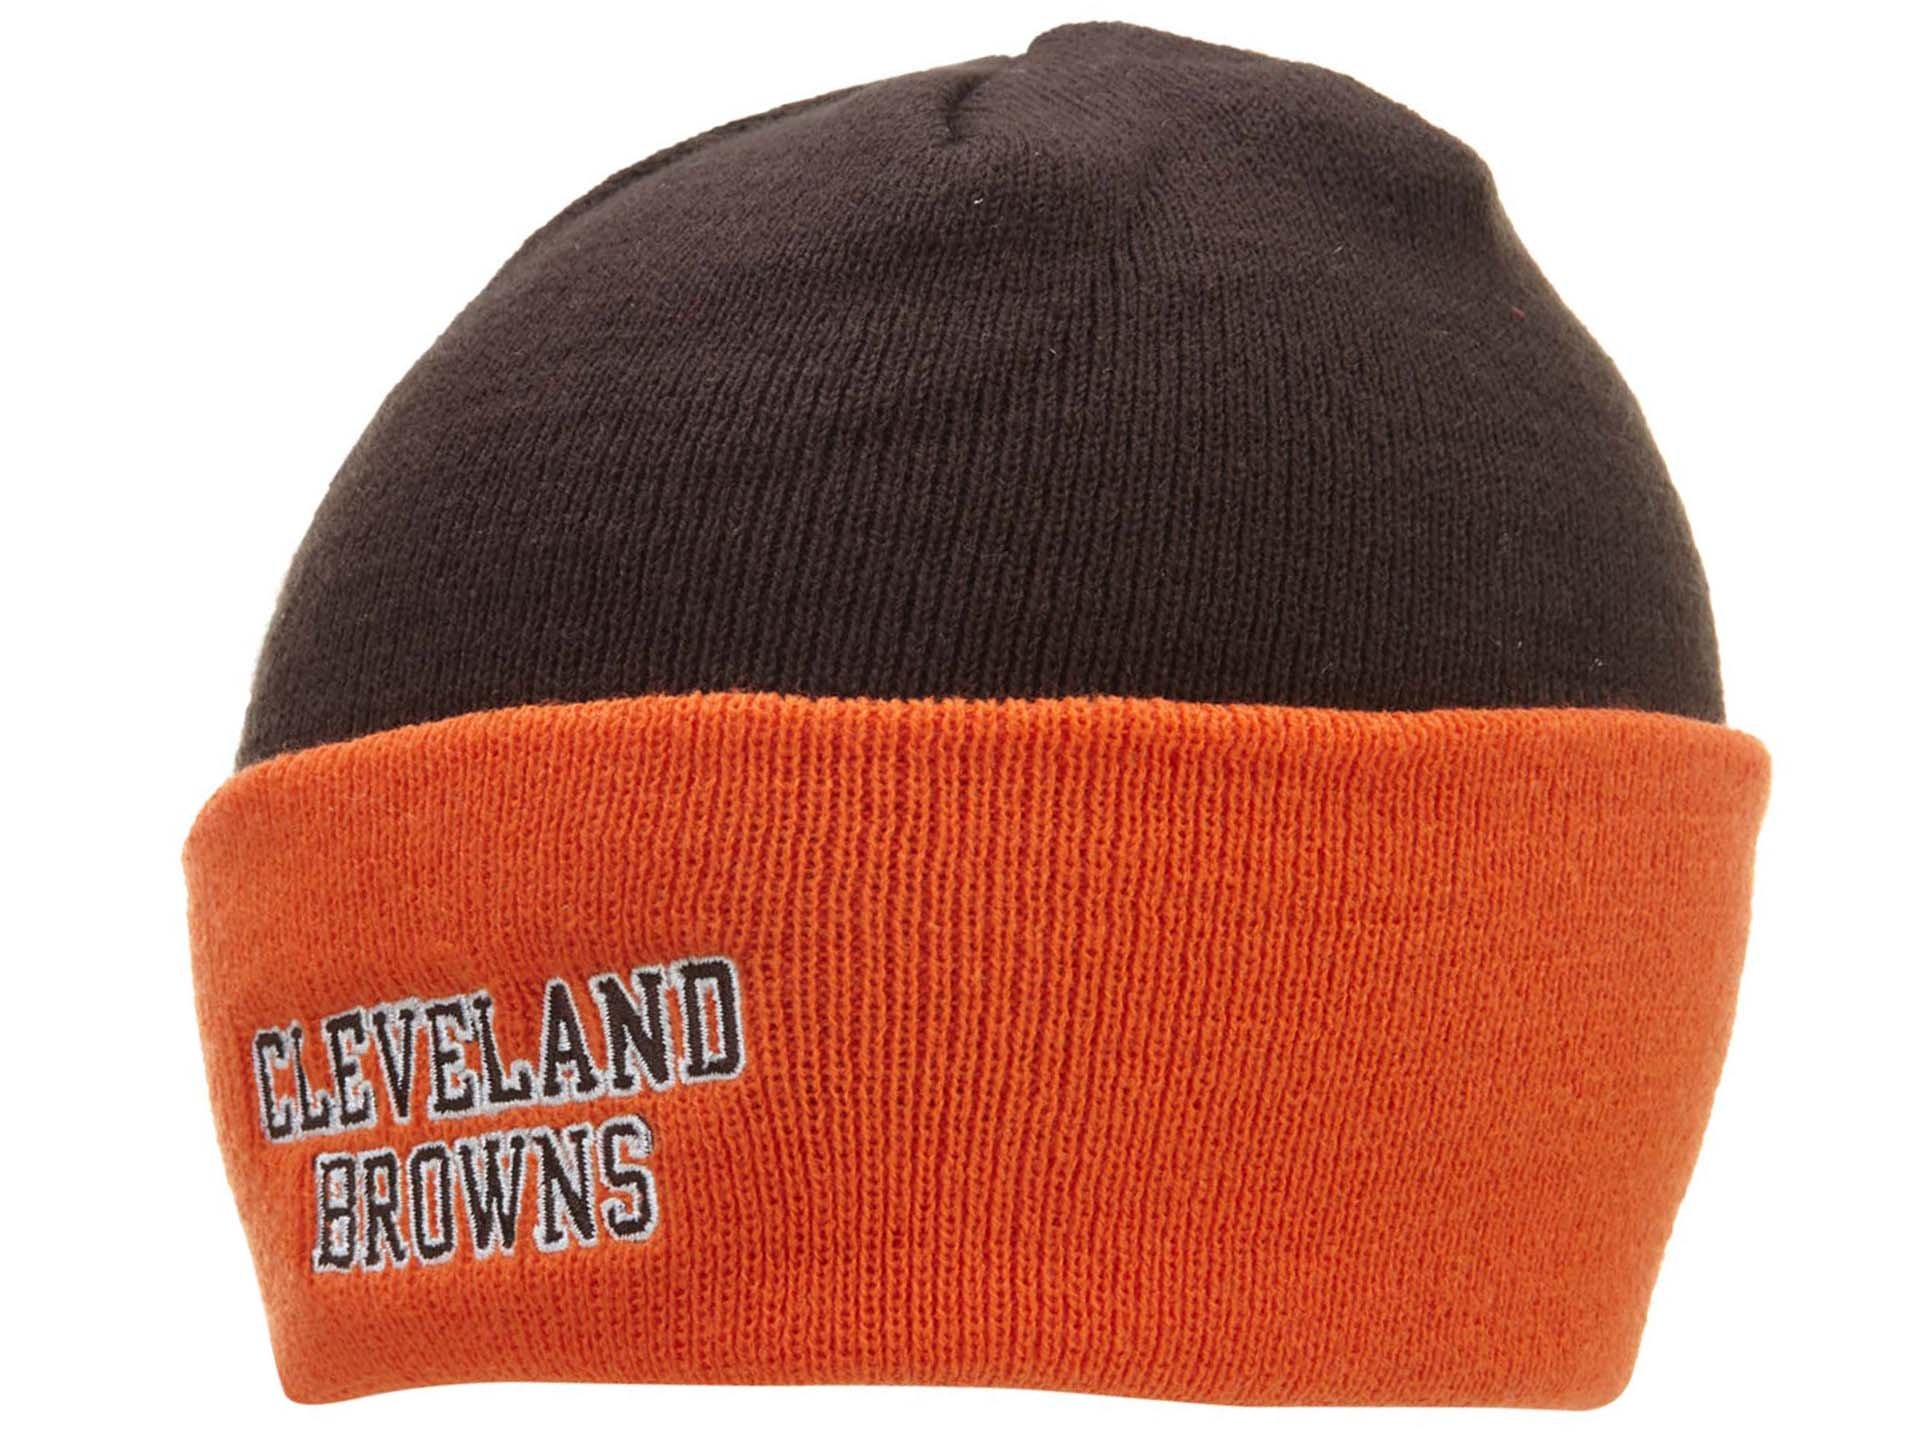 NFL End Zone Cuffed Knit Hat - K010Z, Cleveland Browns, One Size Fits All by Reebok (Image #1)